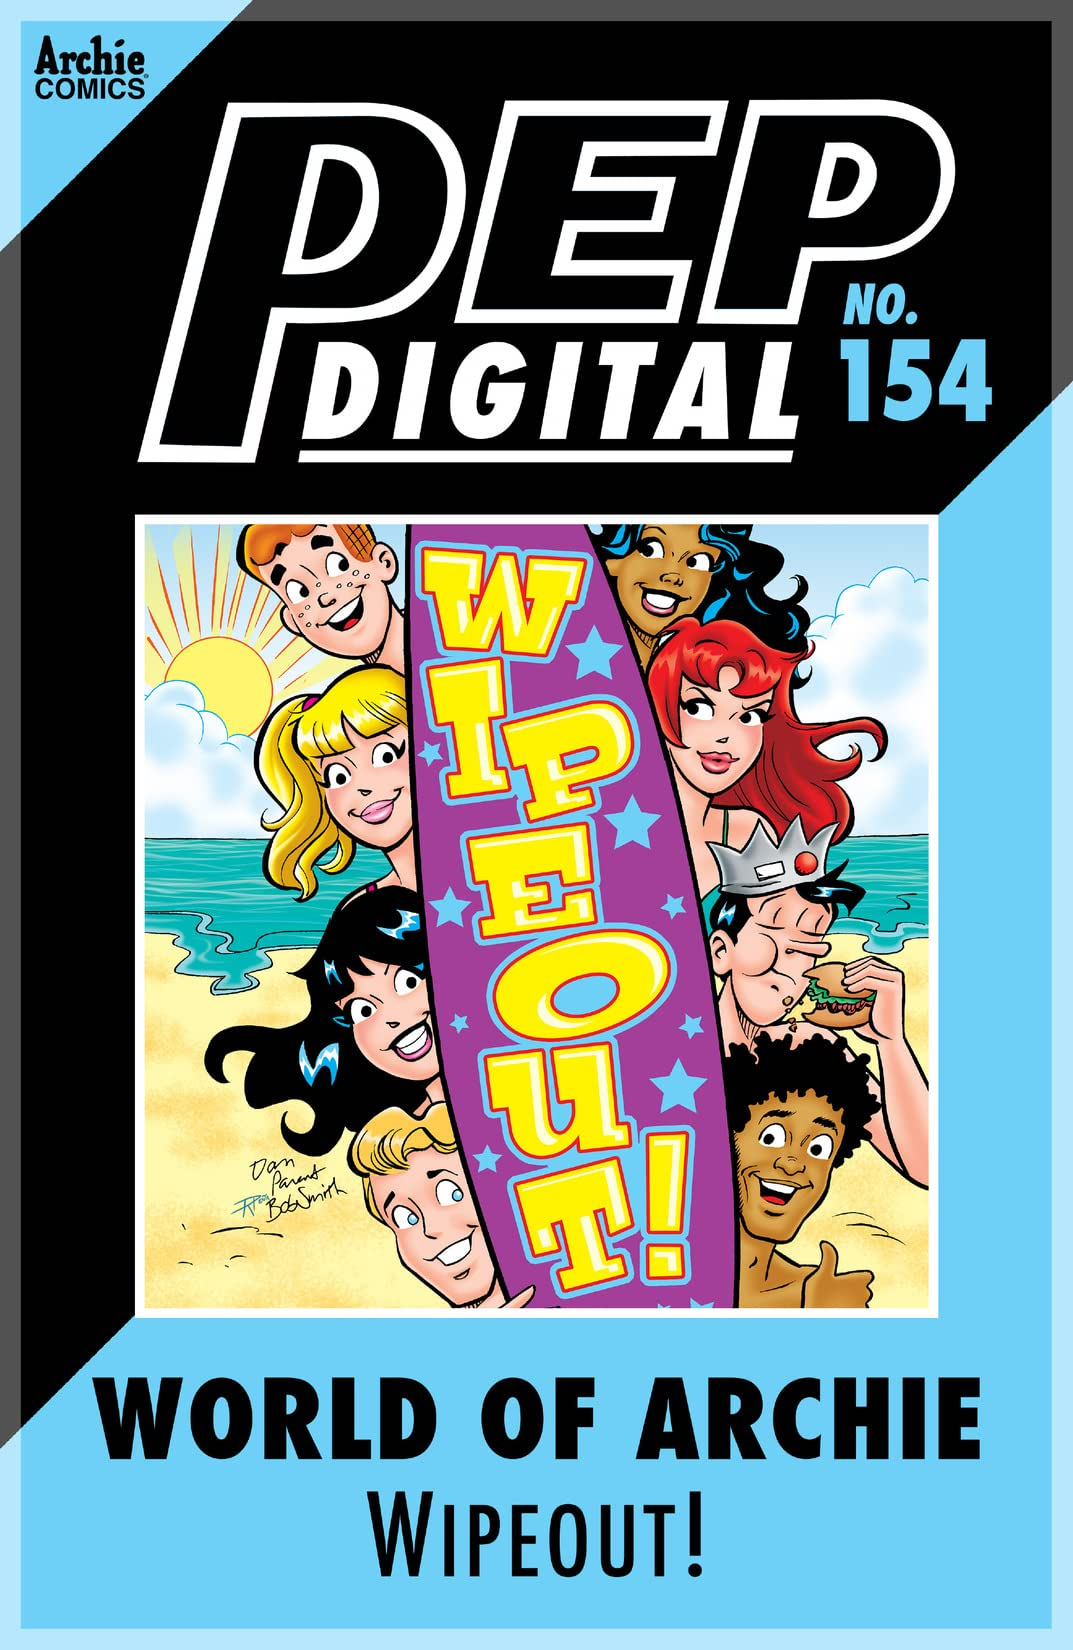 PEP Digital #154: World of Archie Wipeout!